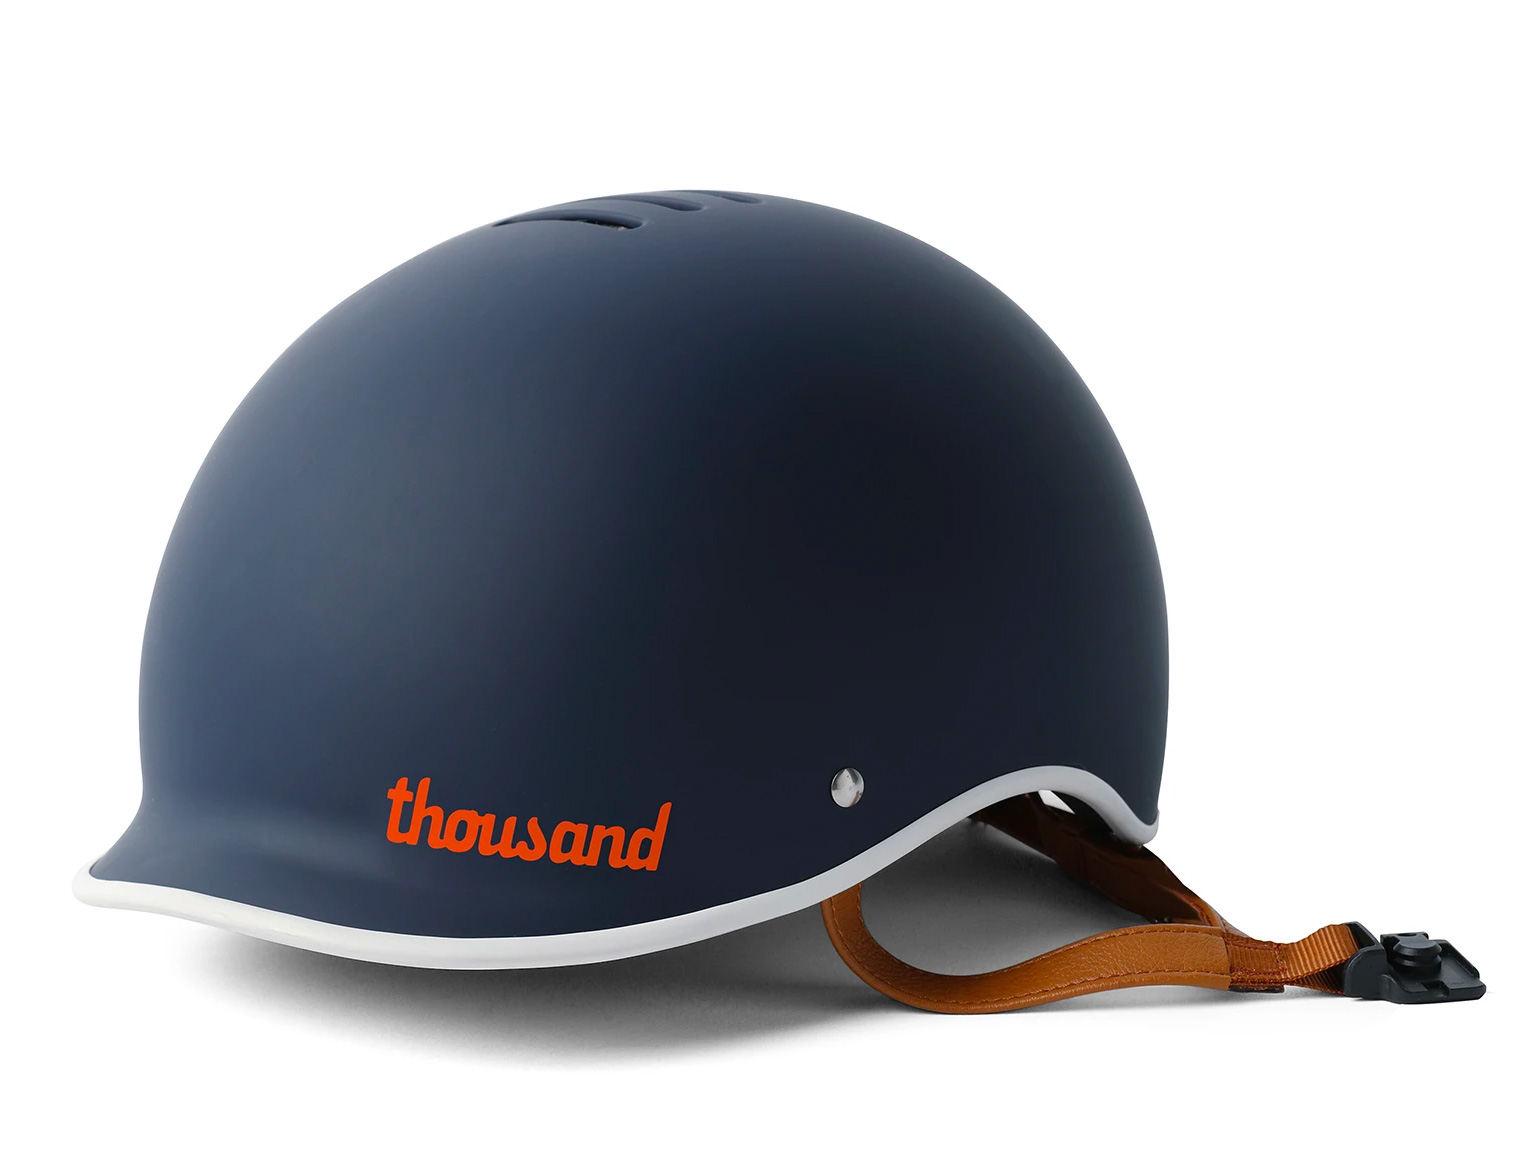 Smooth Operator: Thousand's Heritage Bike Helmet at werd.com